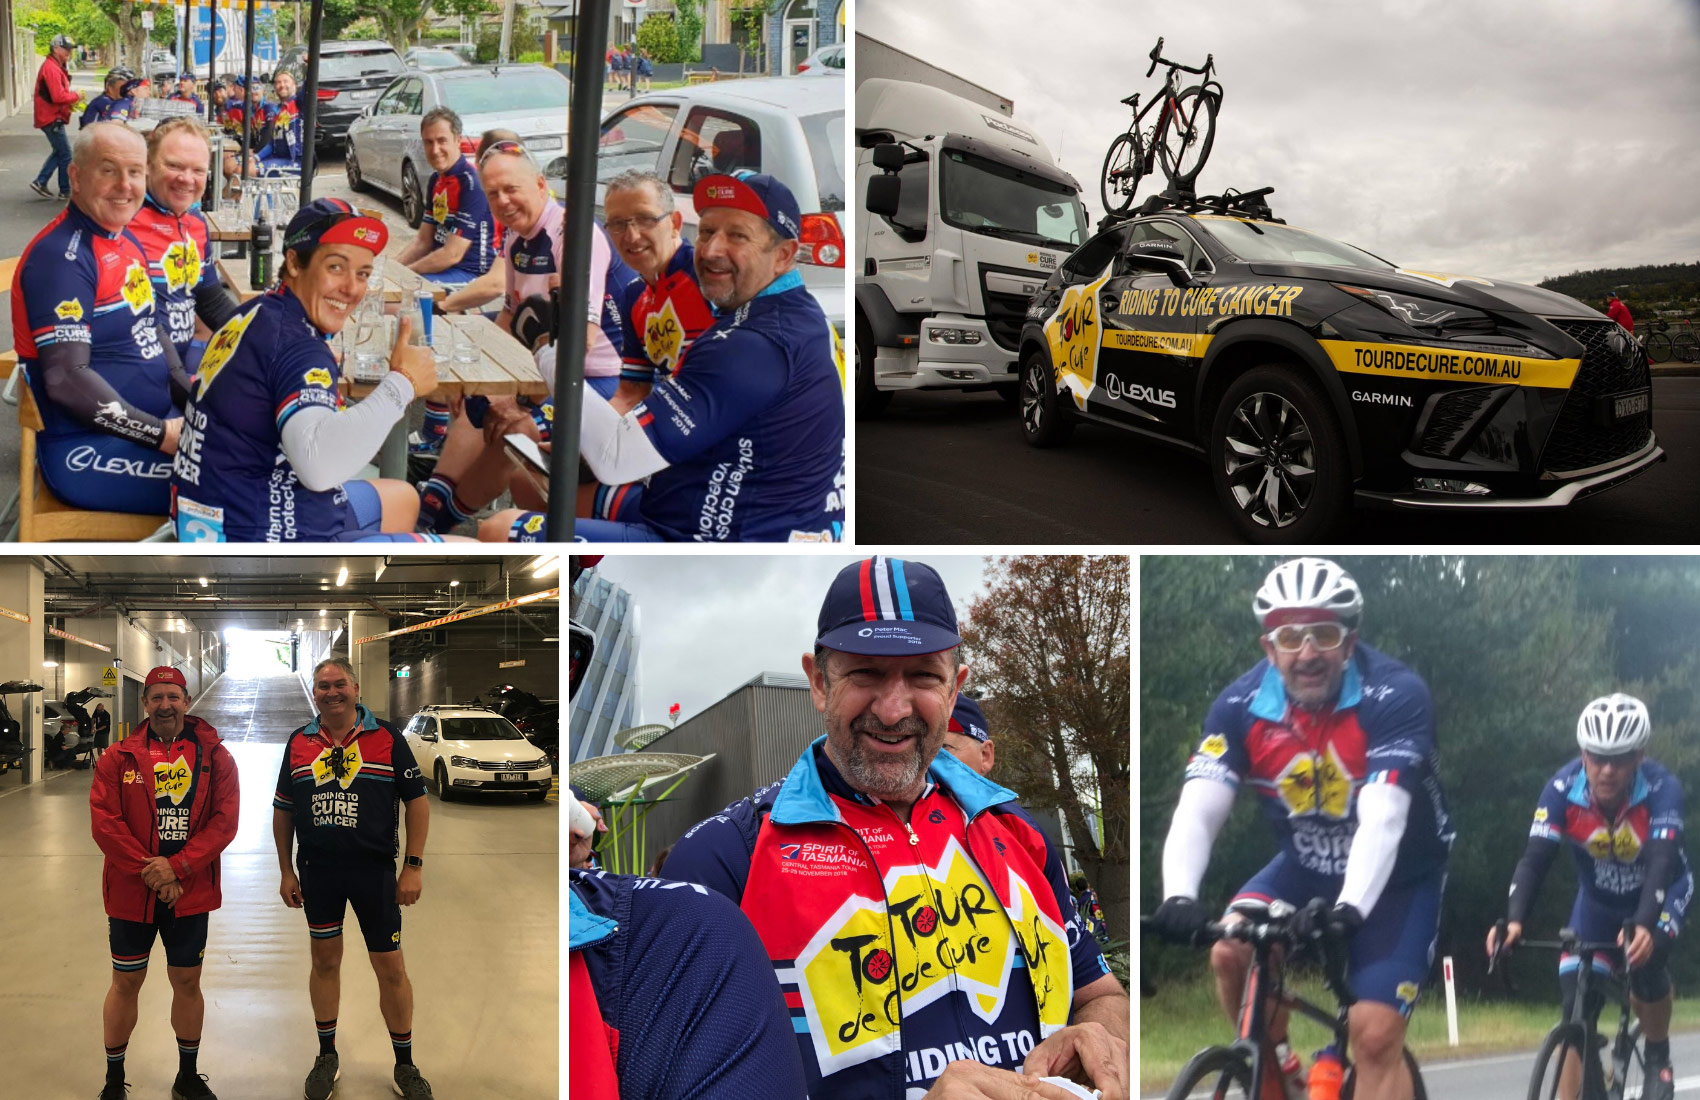 tour-de-cure-peter-mac-ride-sxp-2018-2